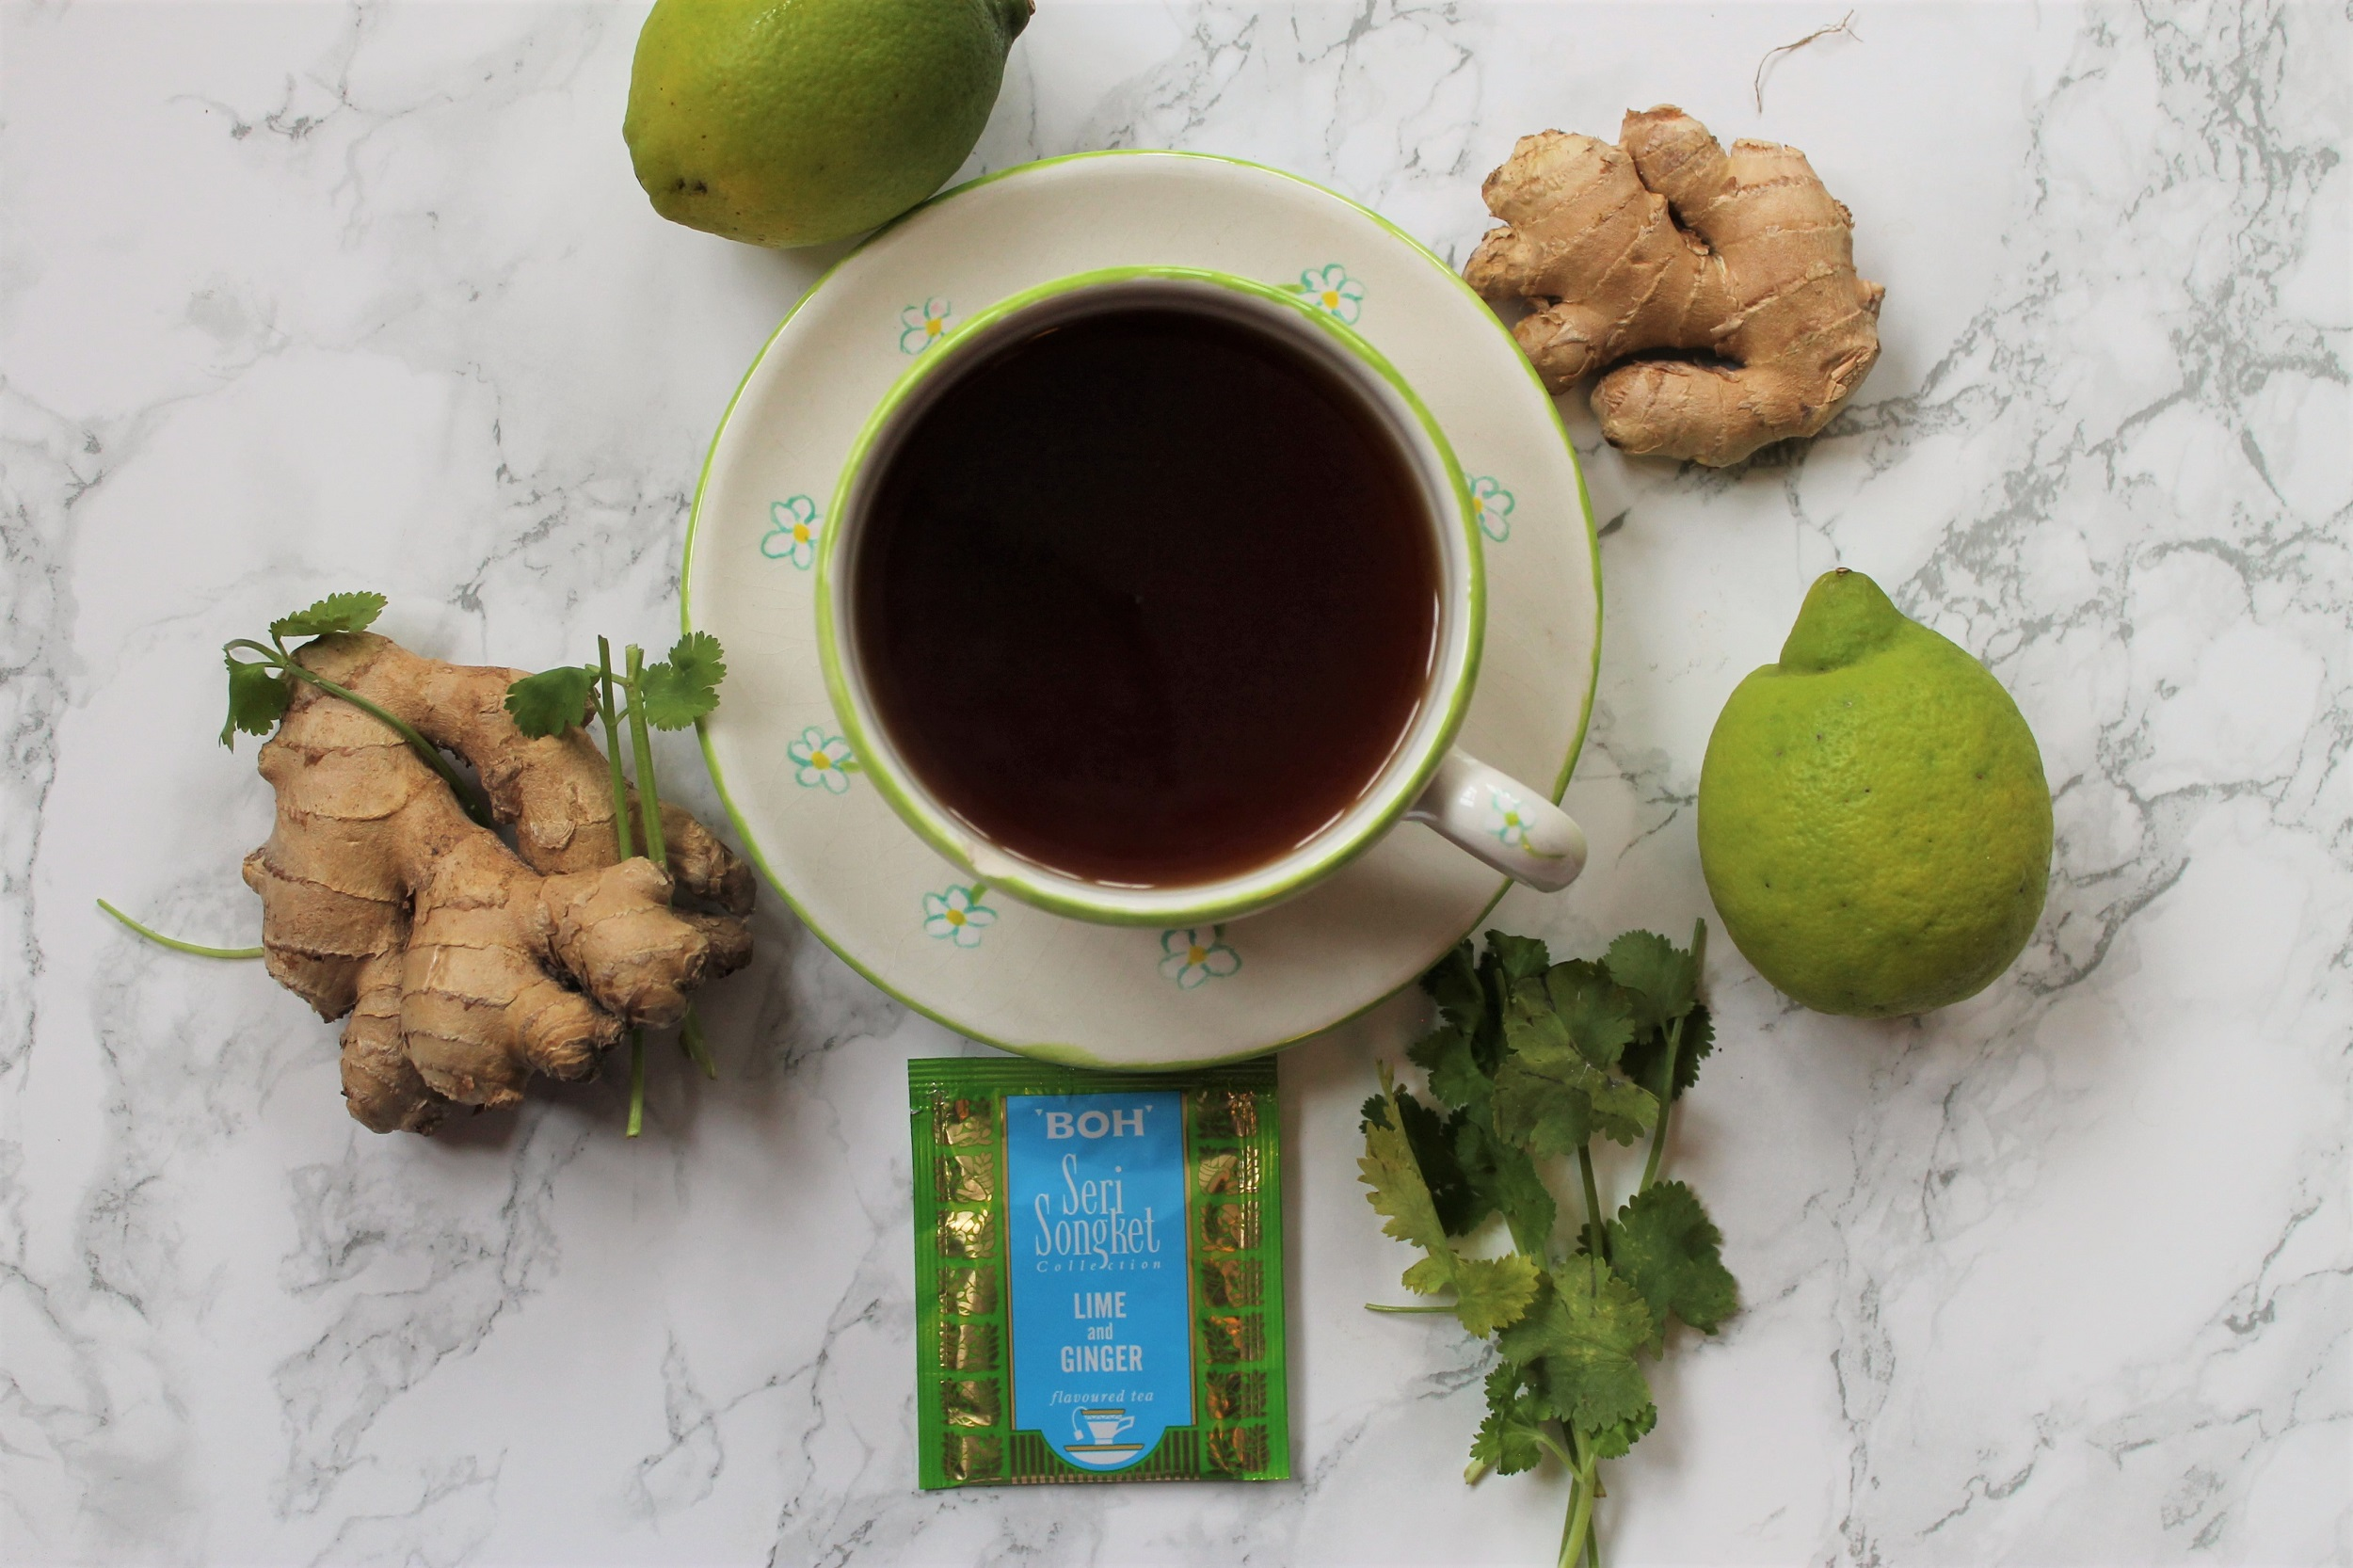 BOH Lime and Ginger Tea Review